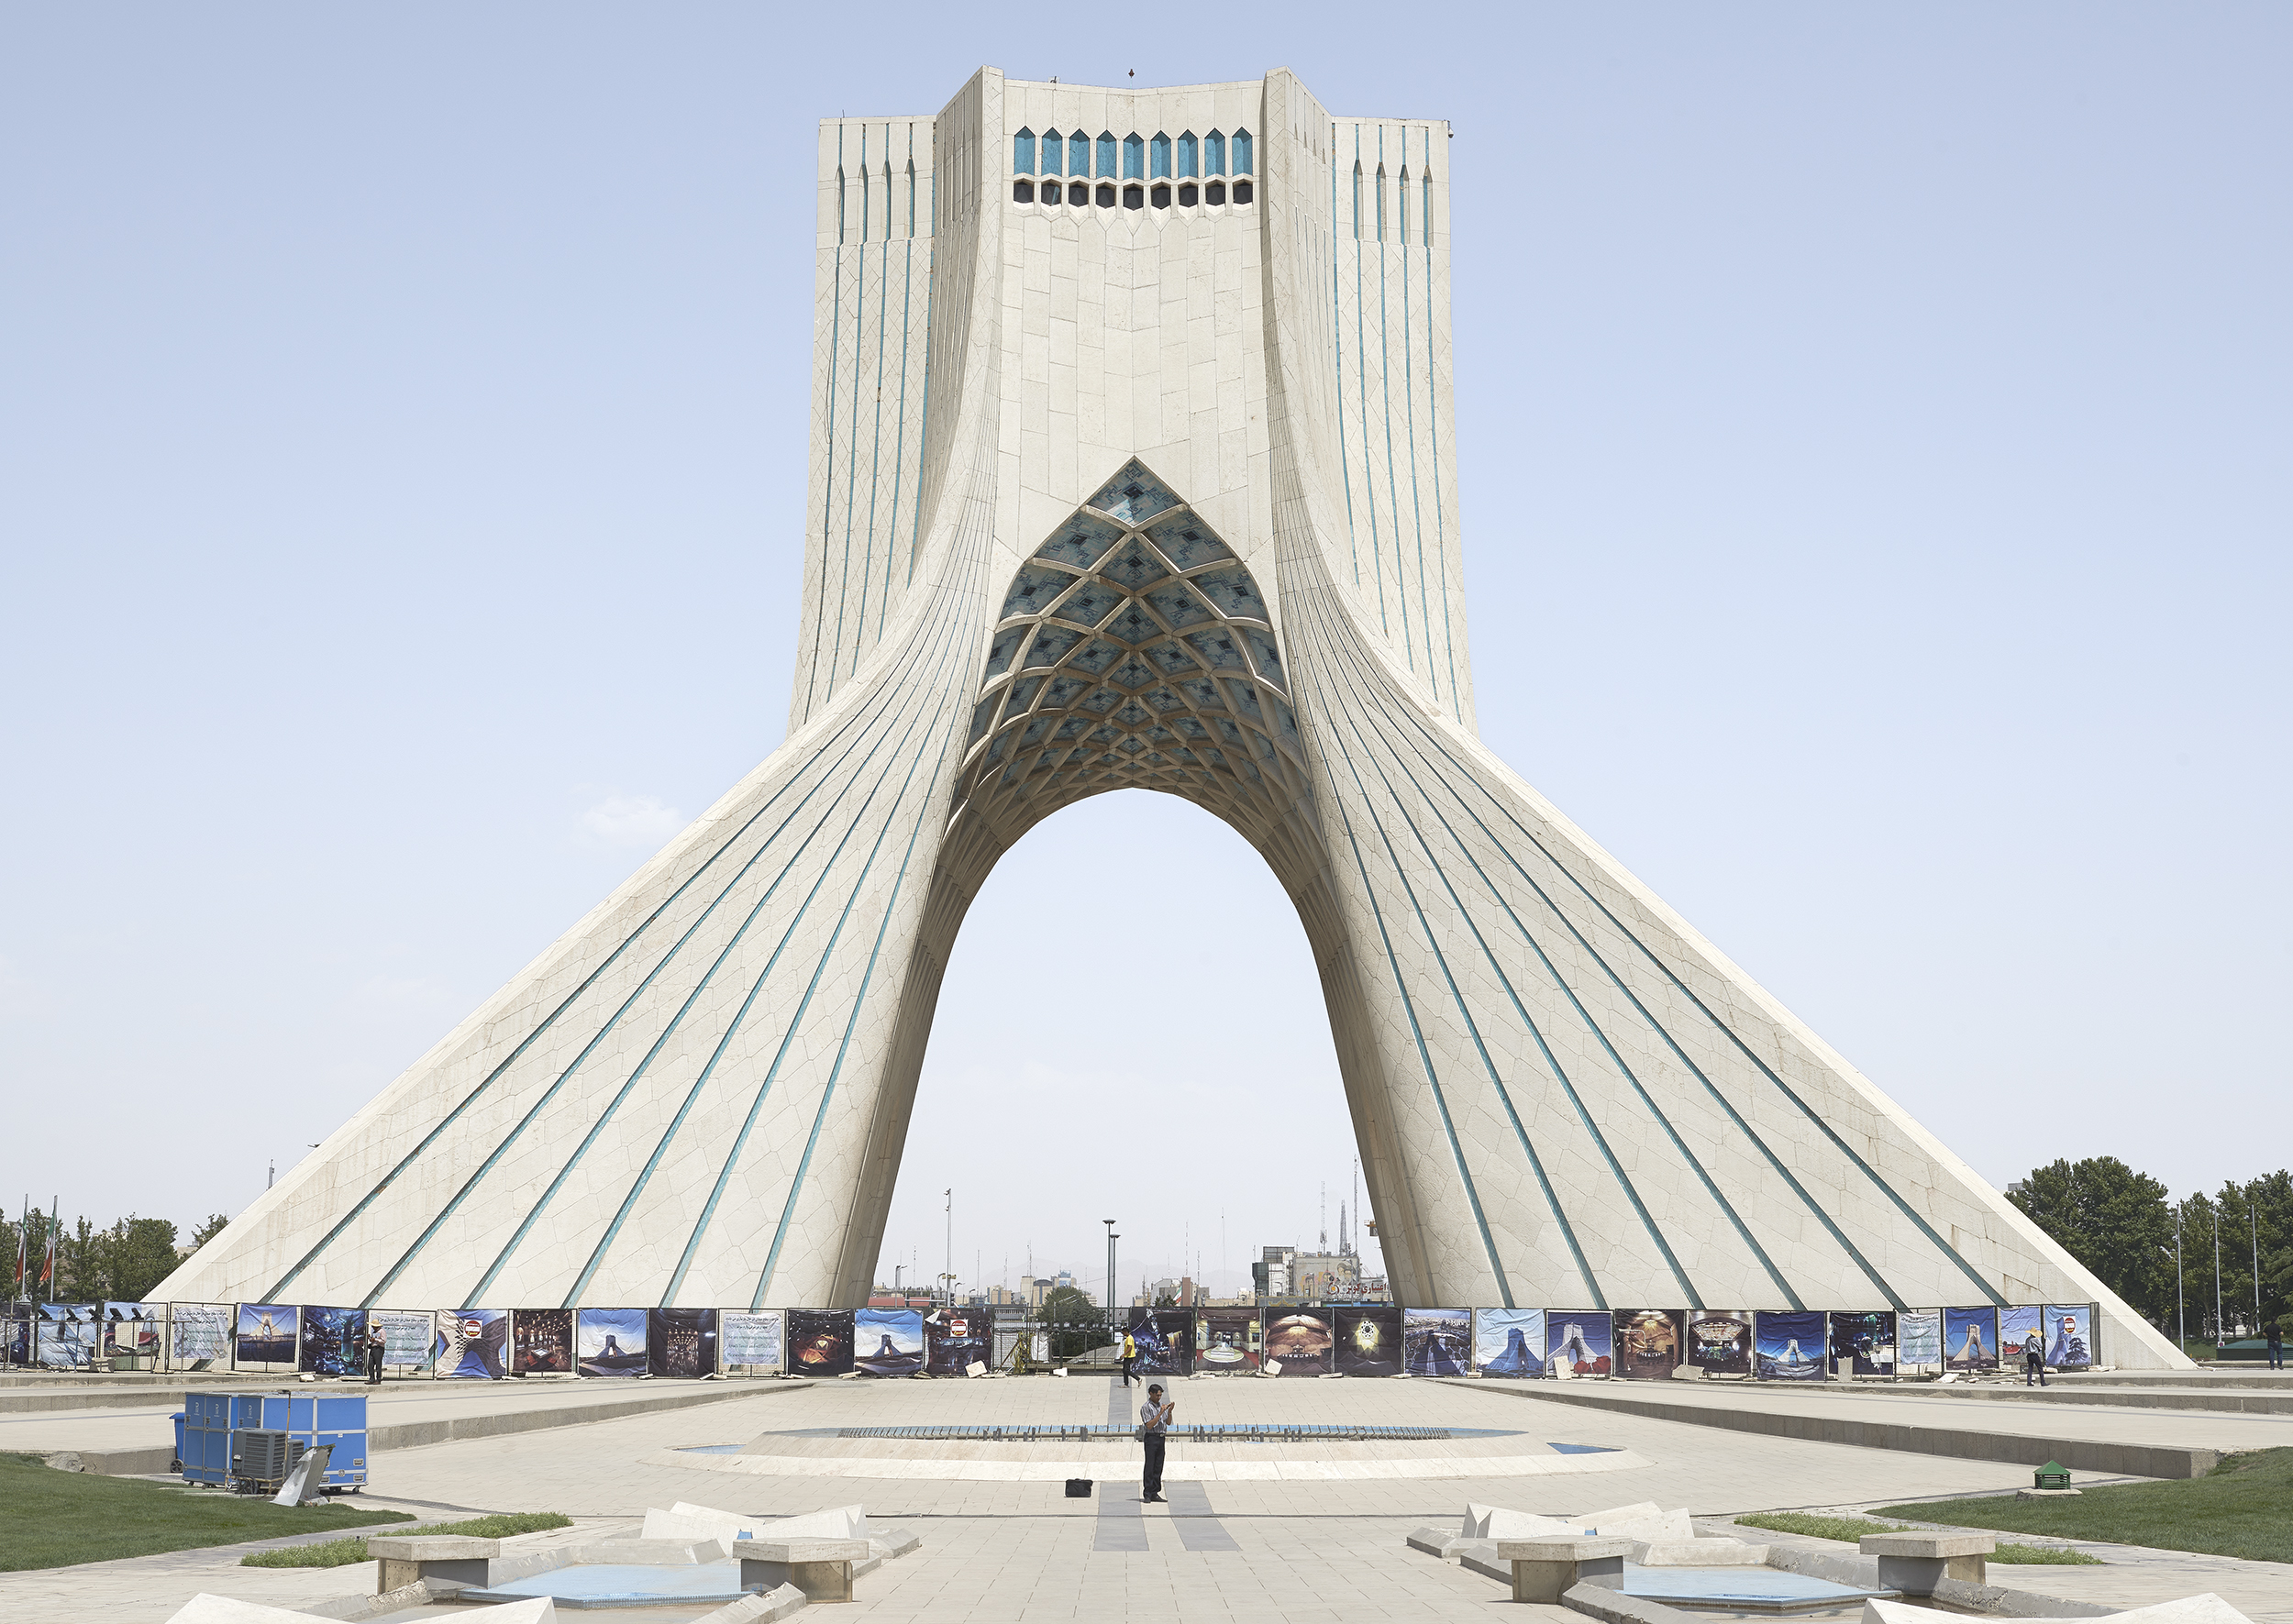 Iran - 2015 (series of 19 images)